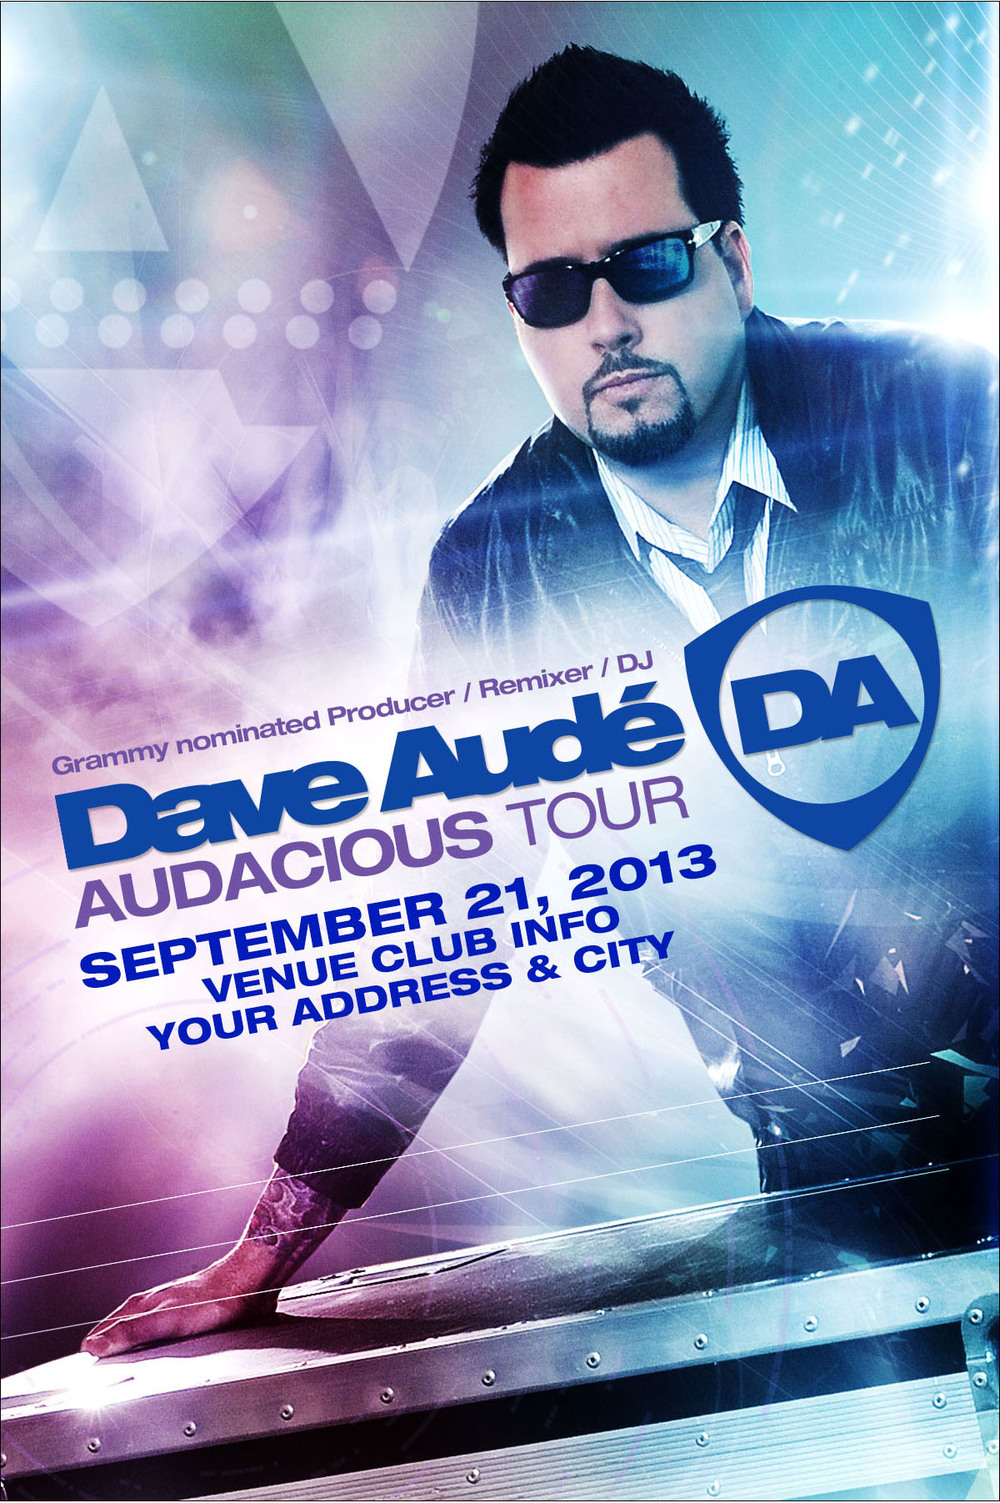 AUD_FRONT_2013FLYER_1.jpg